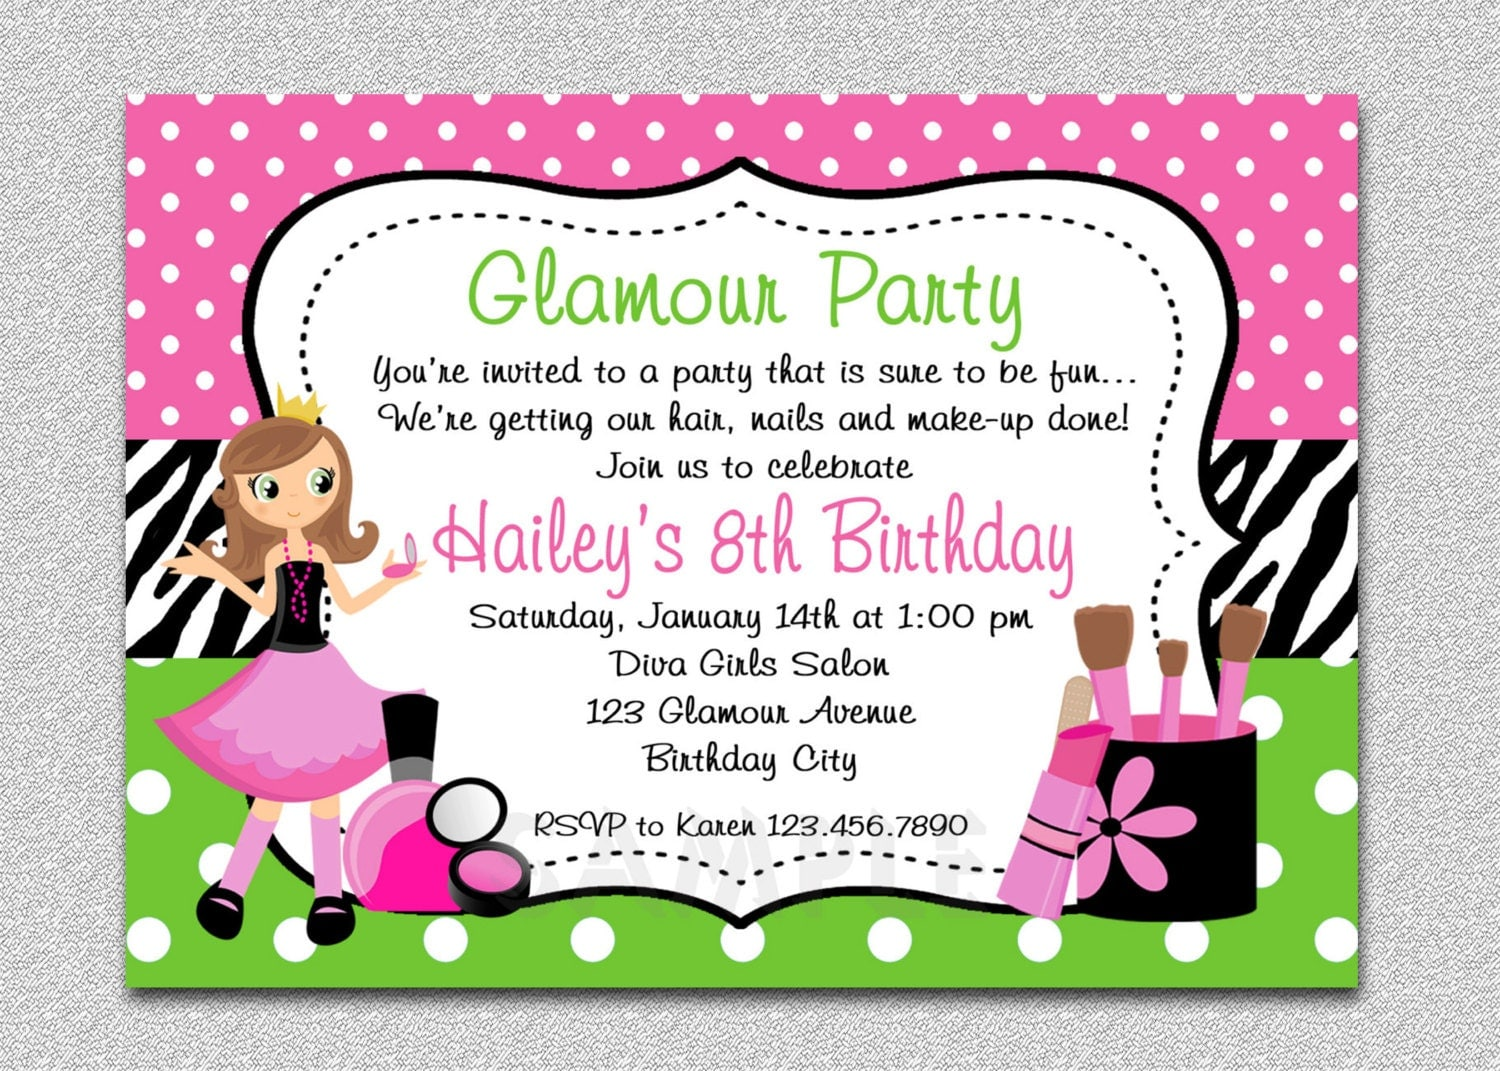 glamour girl birthday invitation glamour girl birthday party, Party invitations